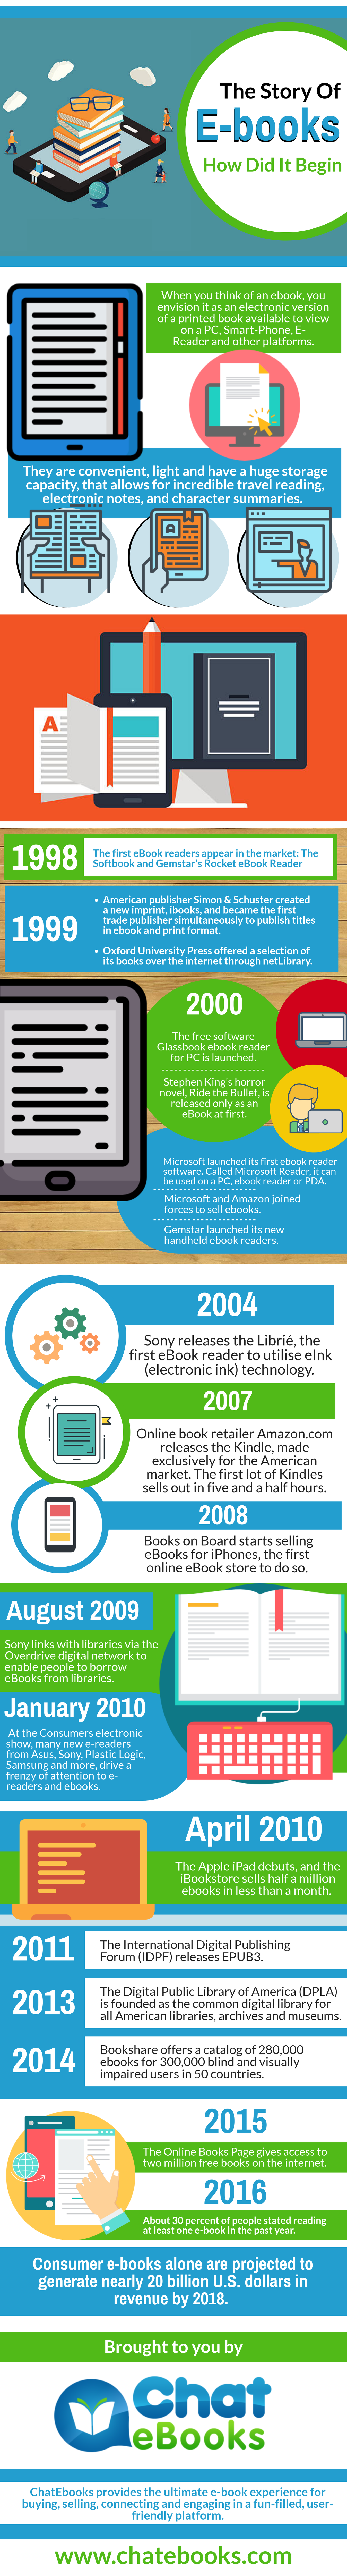 The Story Of E-Books - How Did It Begin Infographic - Chatebooks-9828